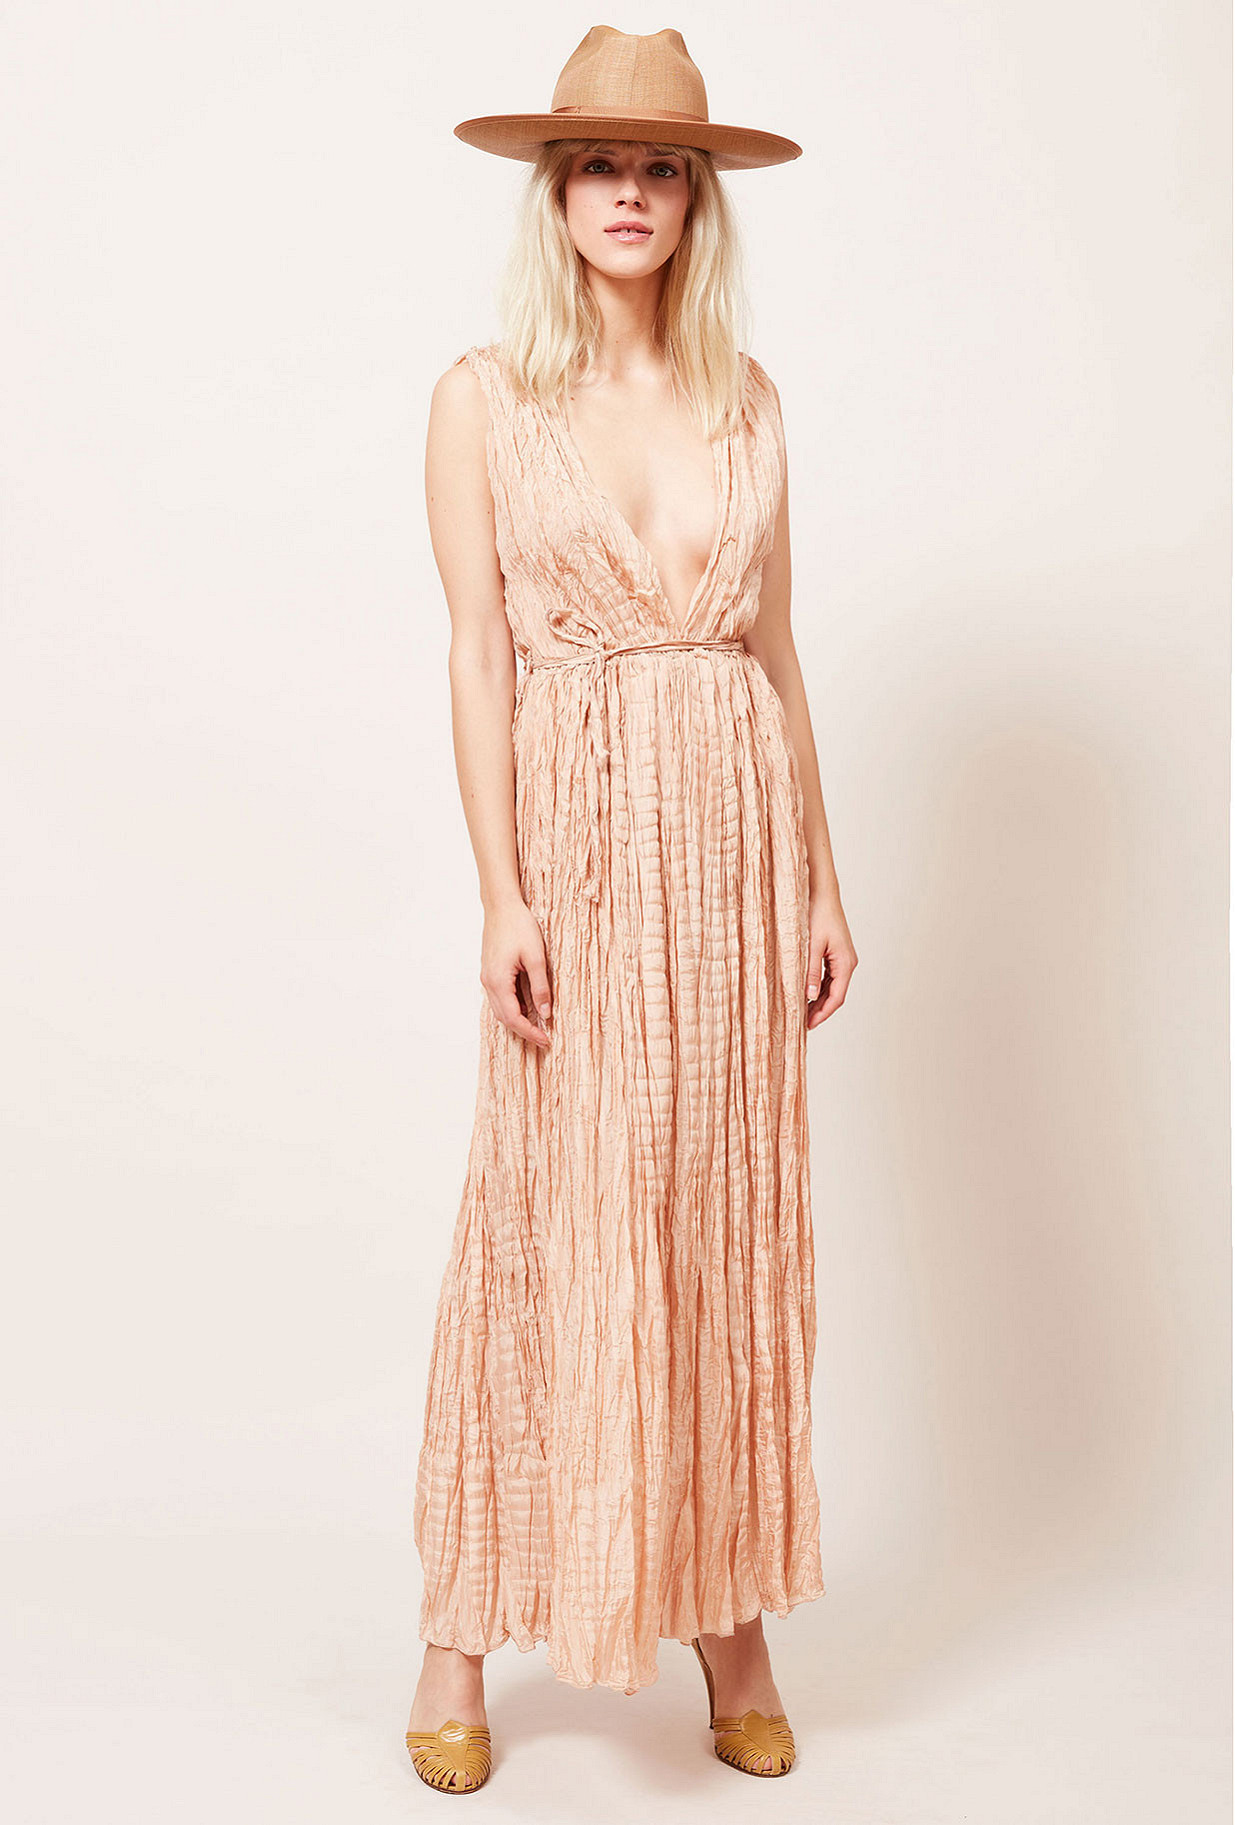 Nude  Dress  Semsema Mes demoiselles fashion clothes designer Paris